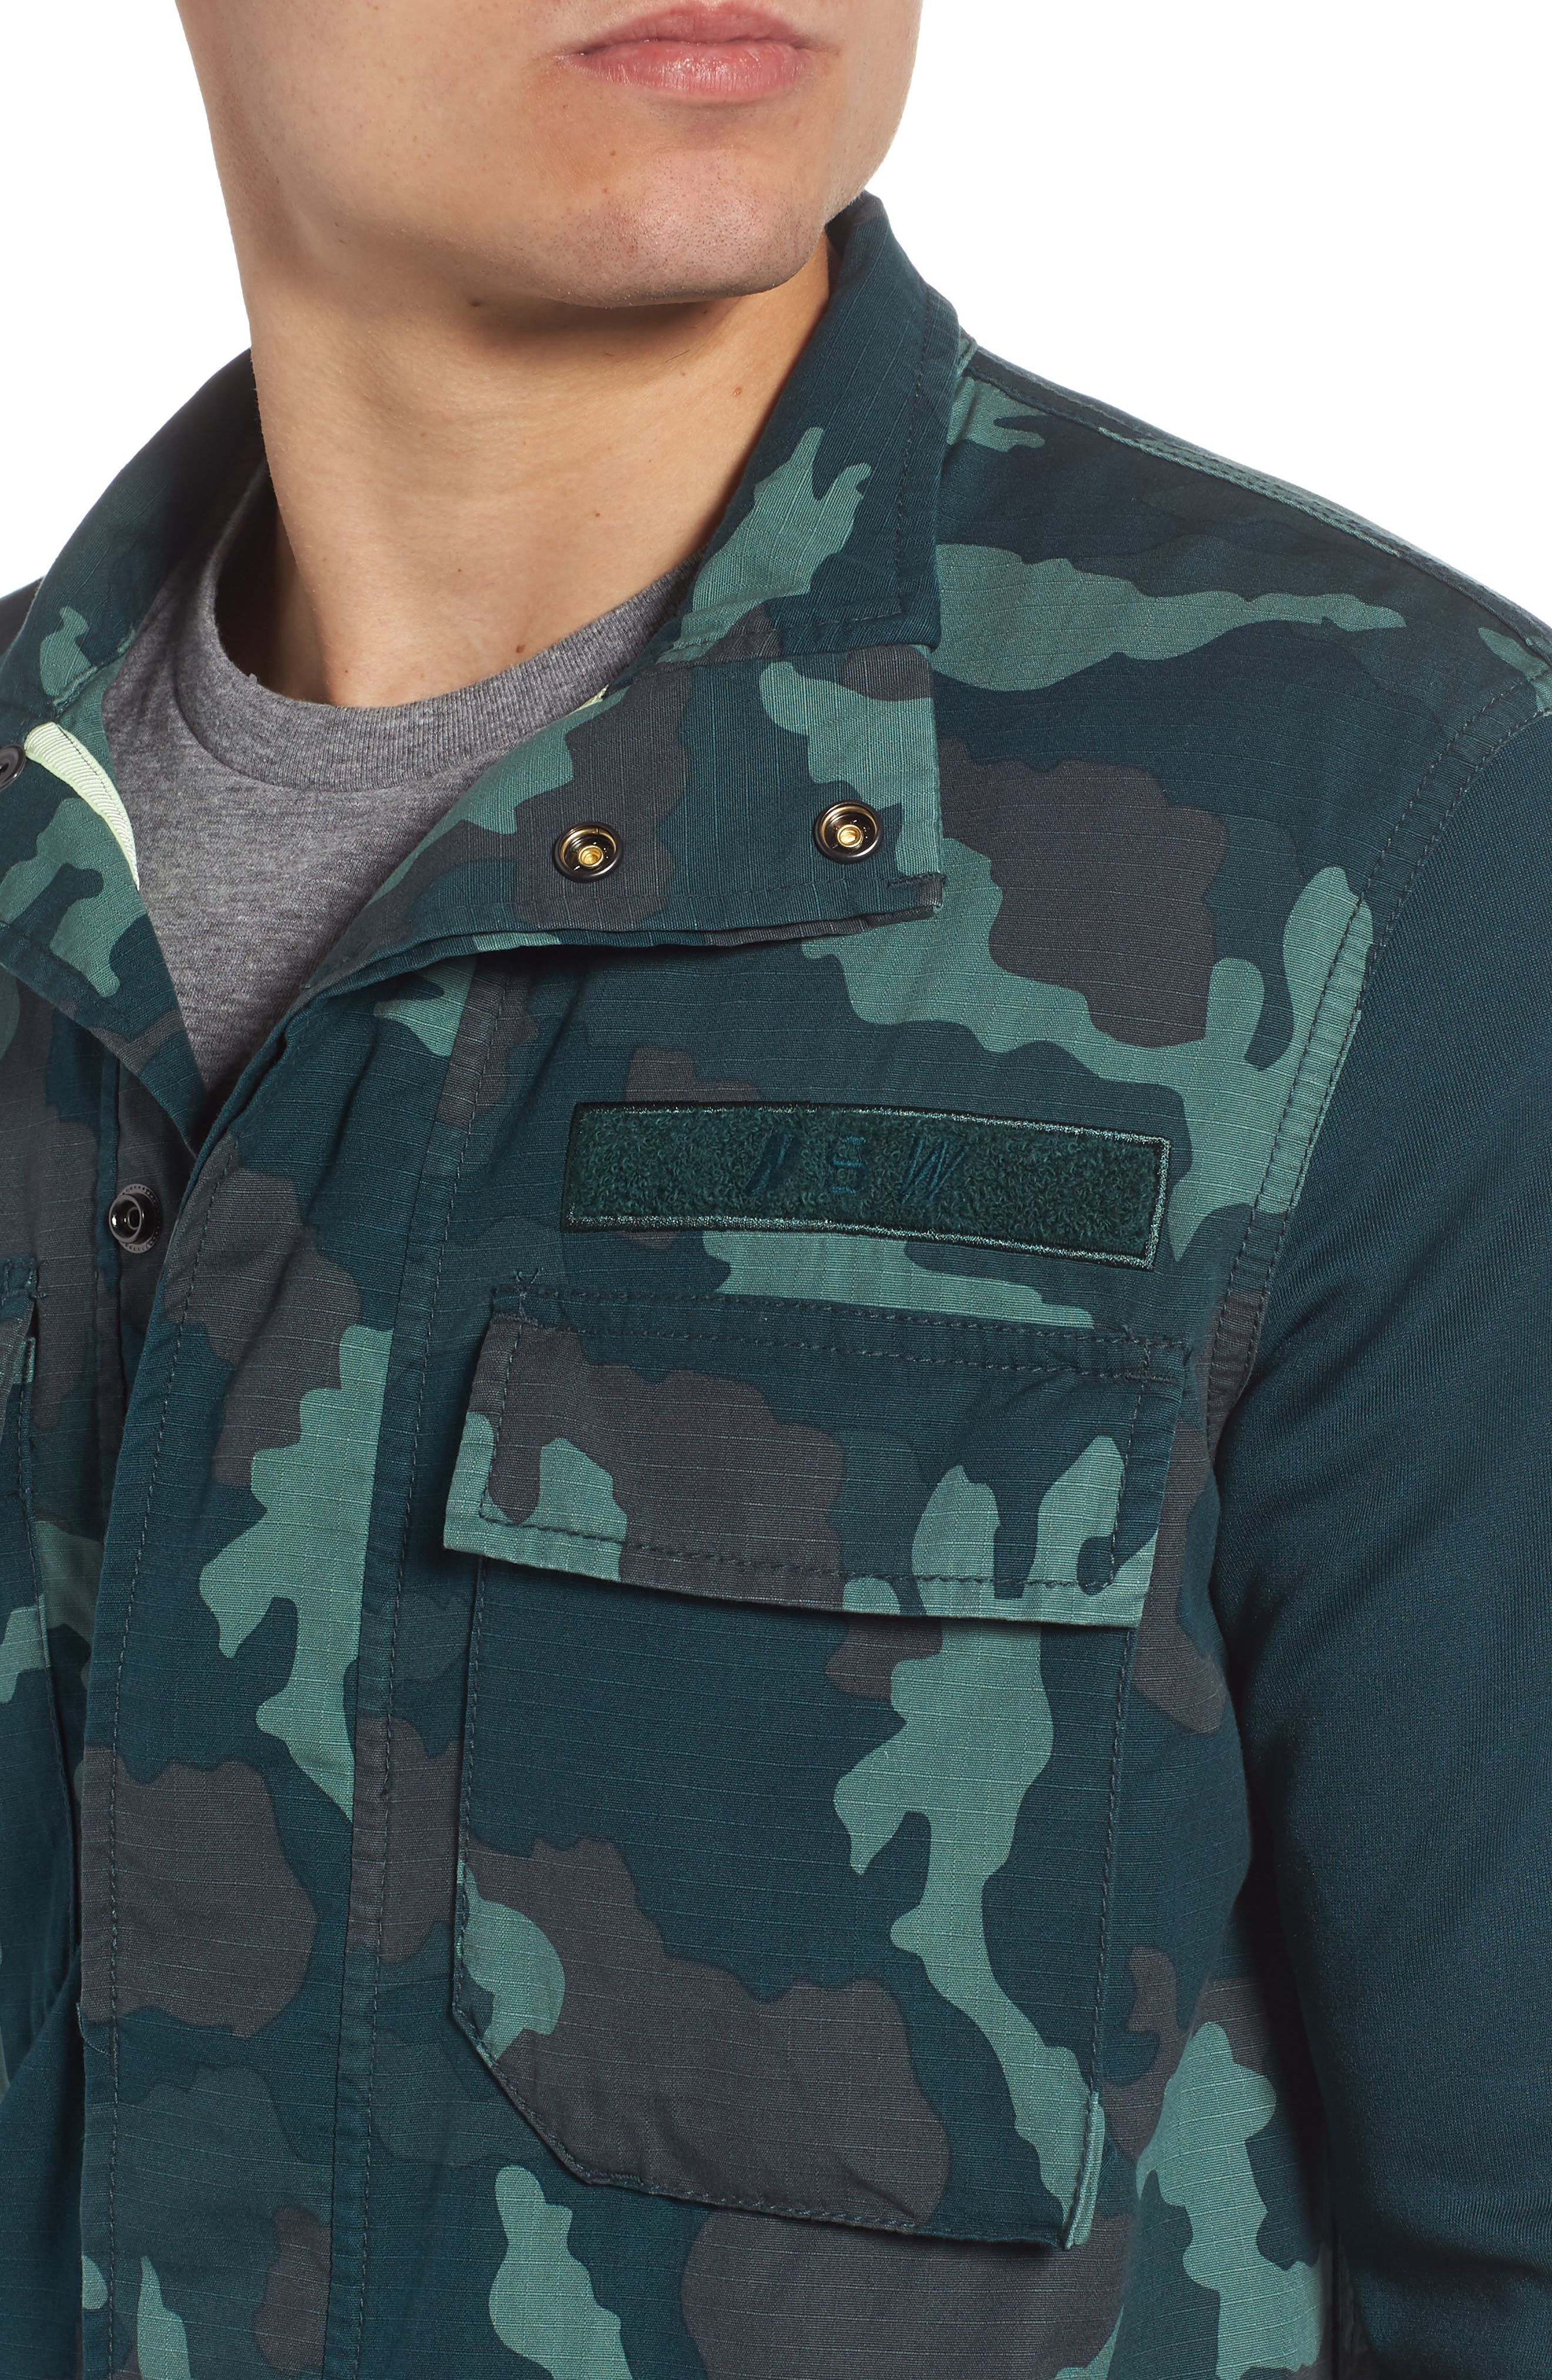 NSW Lightweight Camo Field Jacket,                             Alternate thumbnail 4, color,                             MIDNIGHT SPRUCE